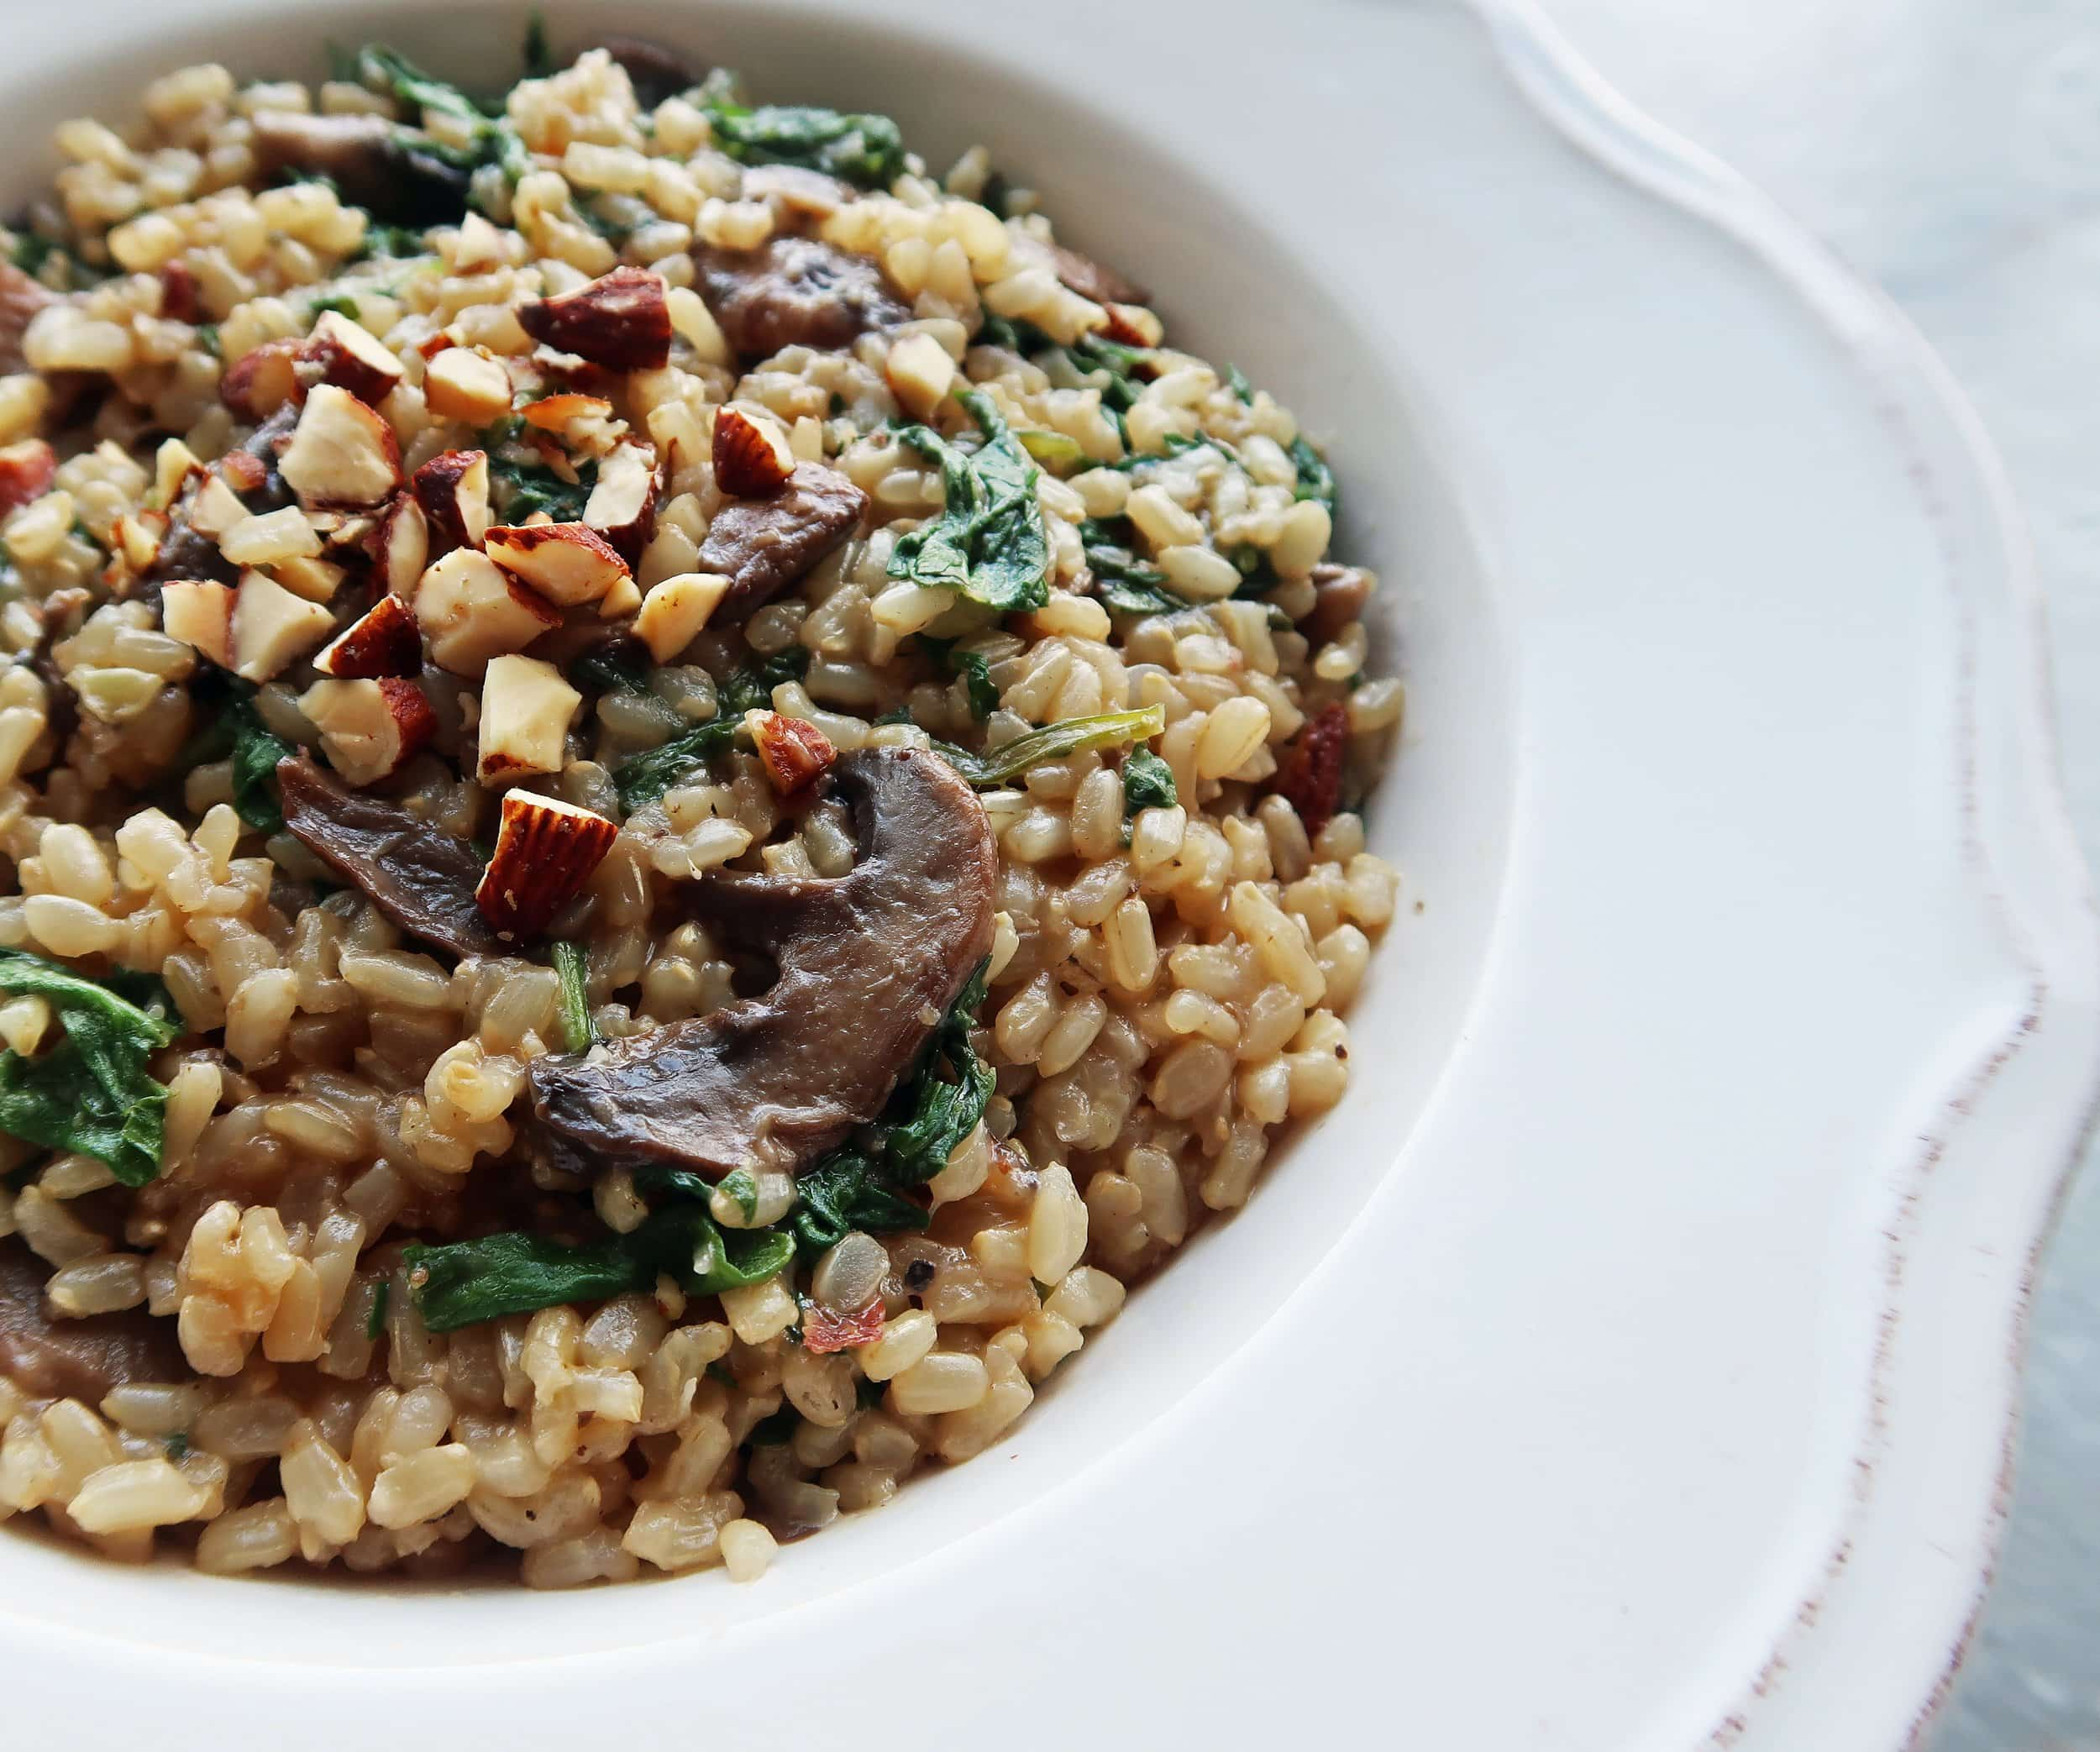 A close up of a bowl of Brown Rice Pilaf with Mushrooms, Kale, and Almonds